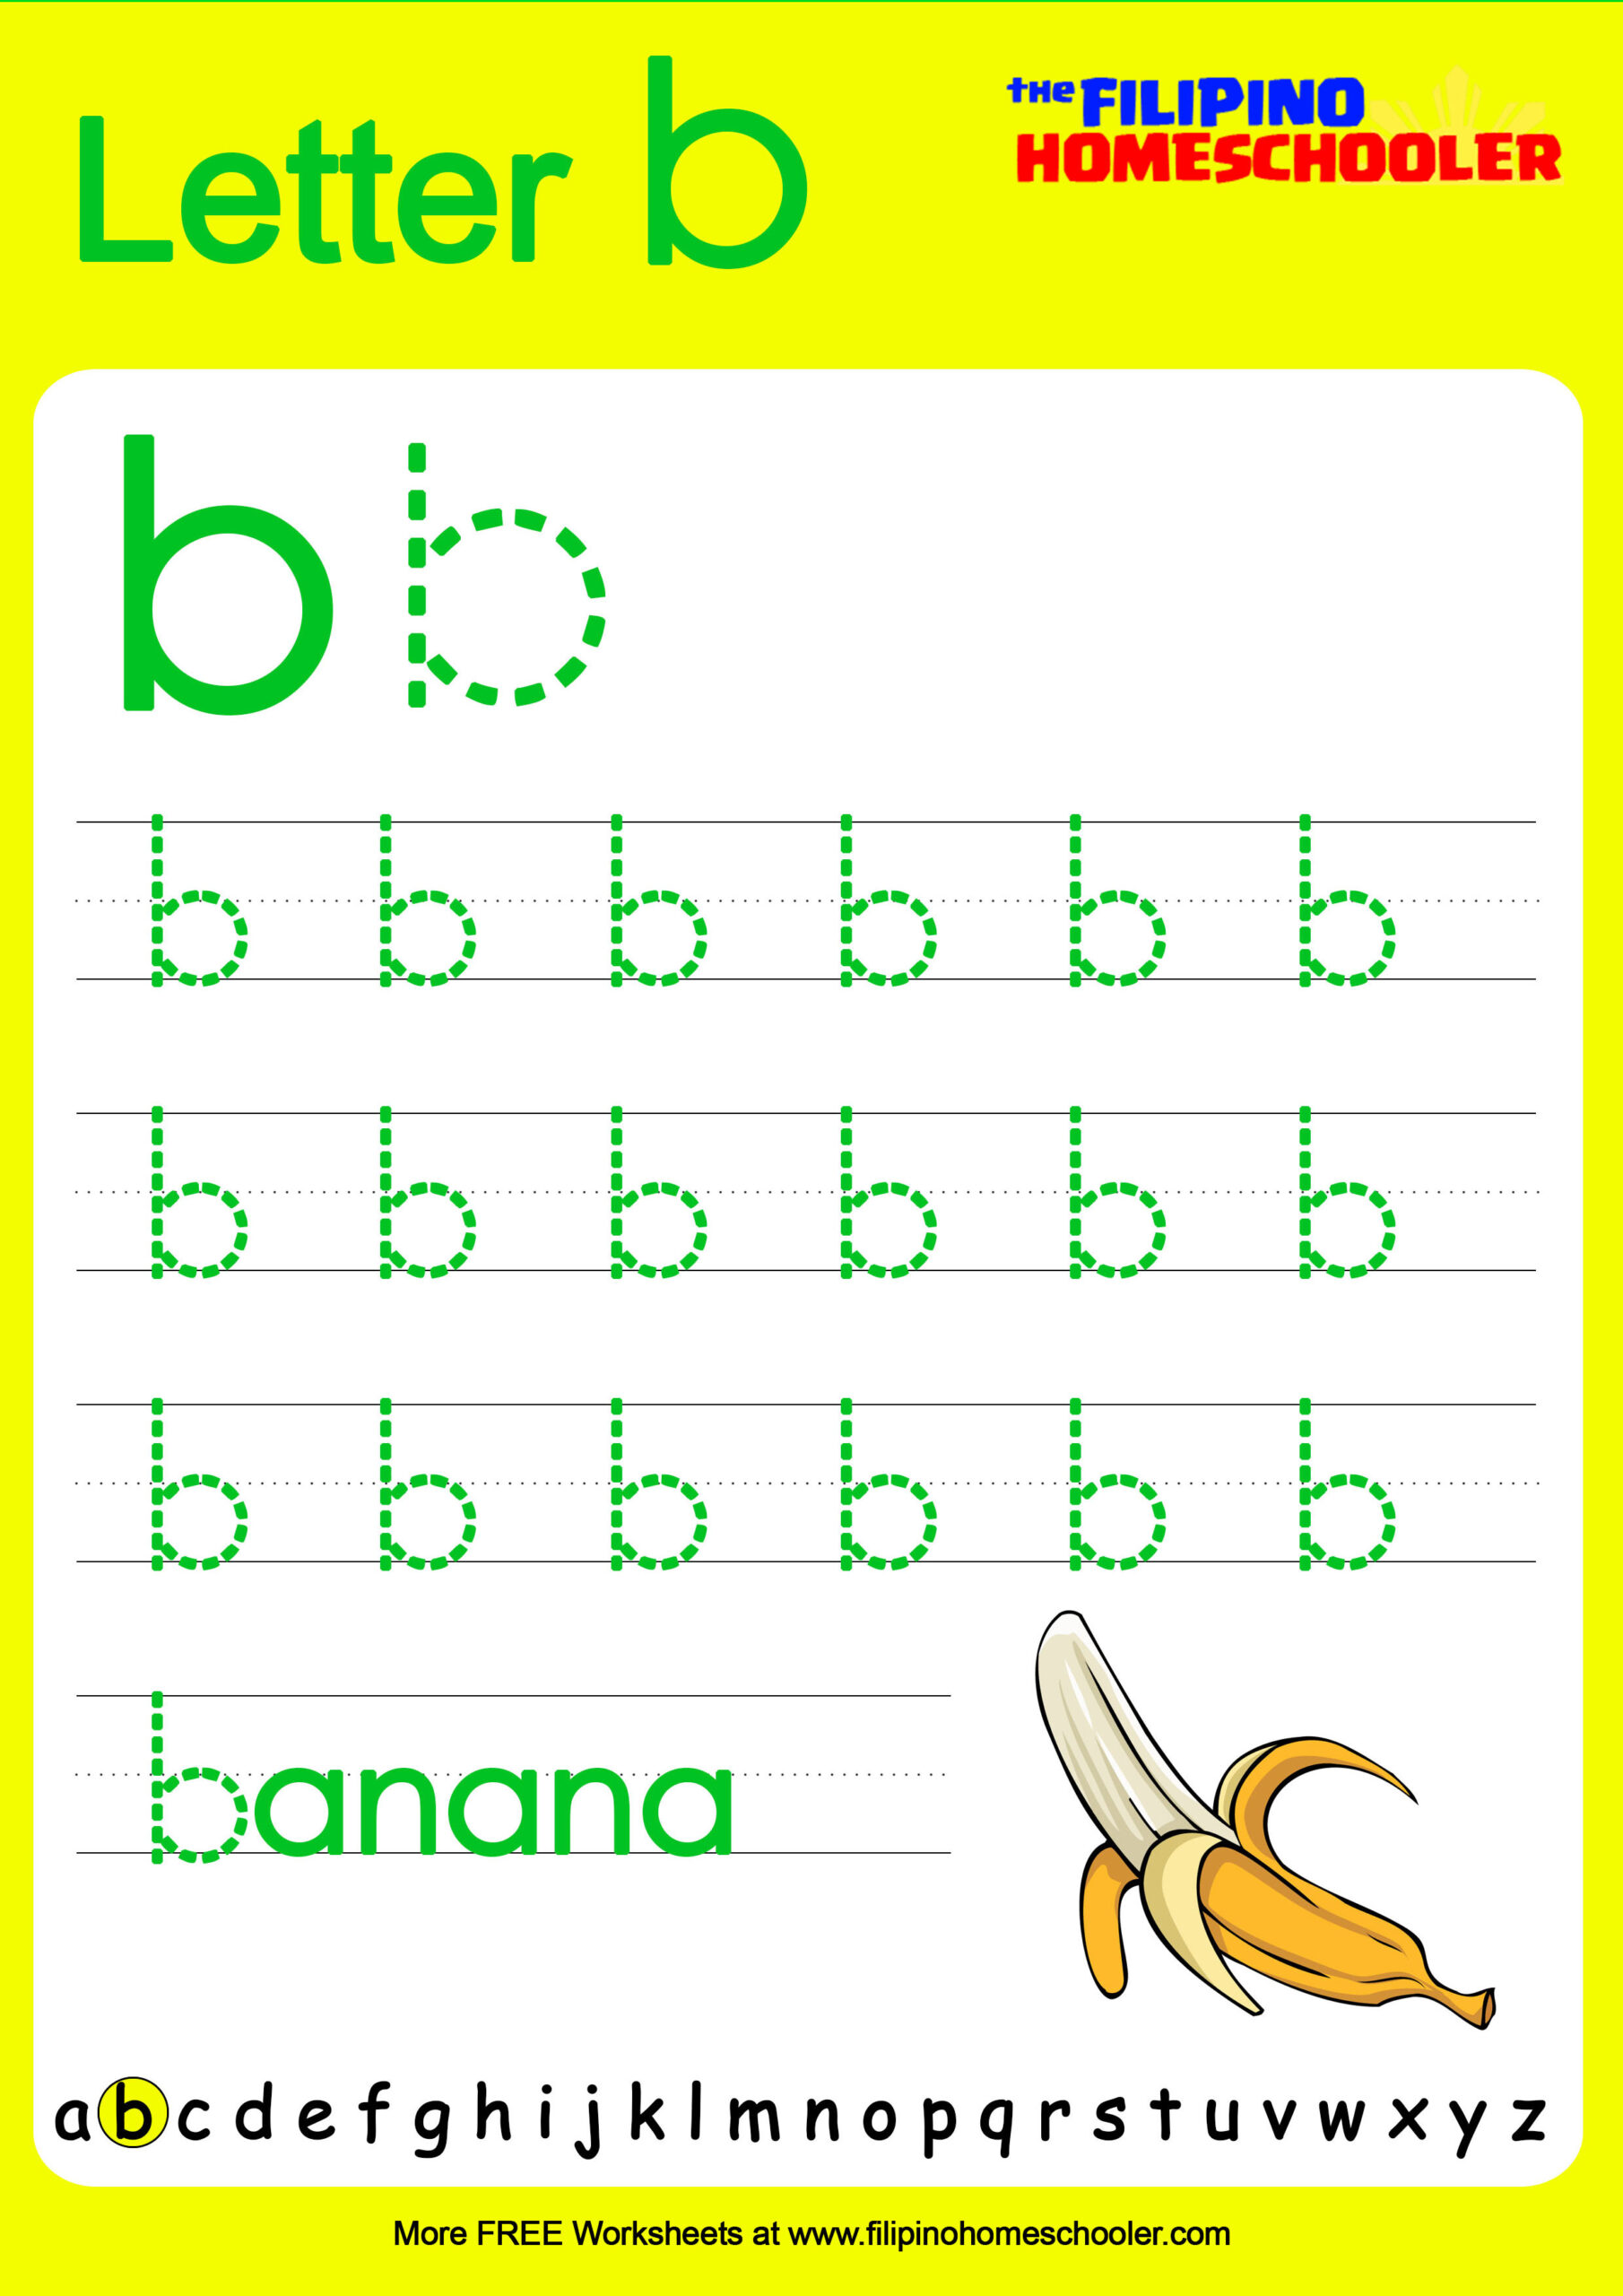 Free Lowercase Letter Tracing Worksheets — The Filipino